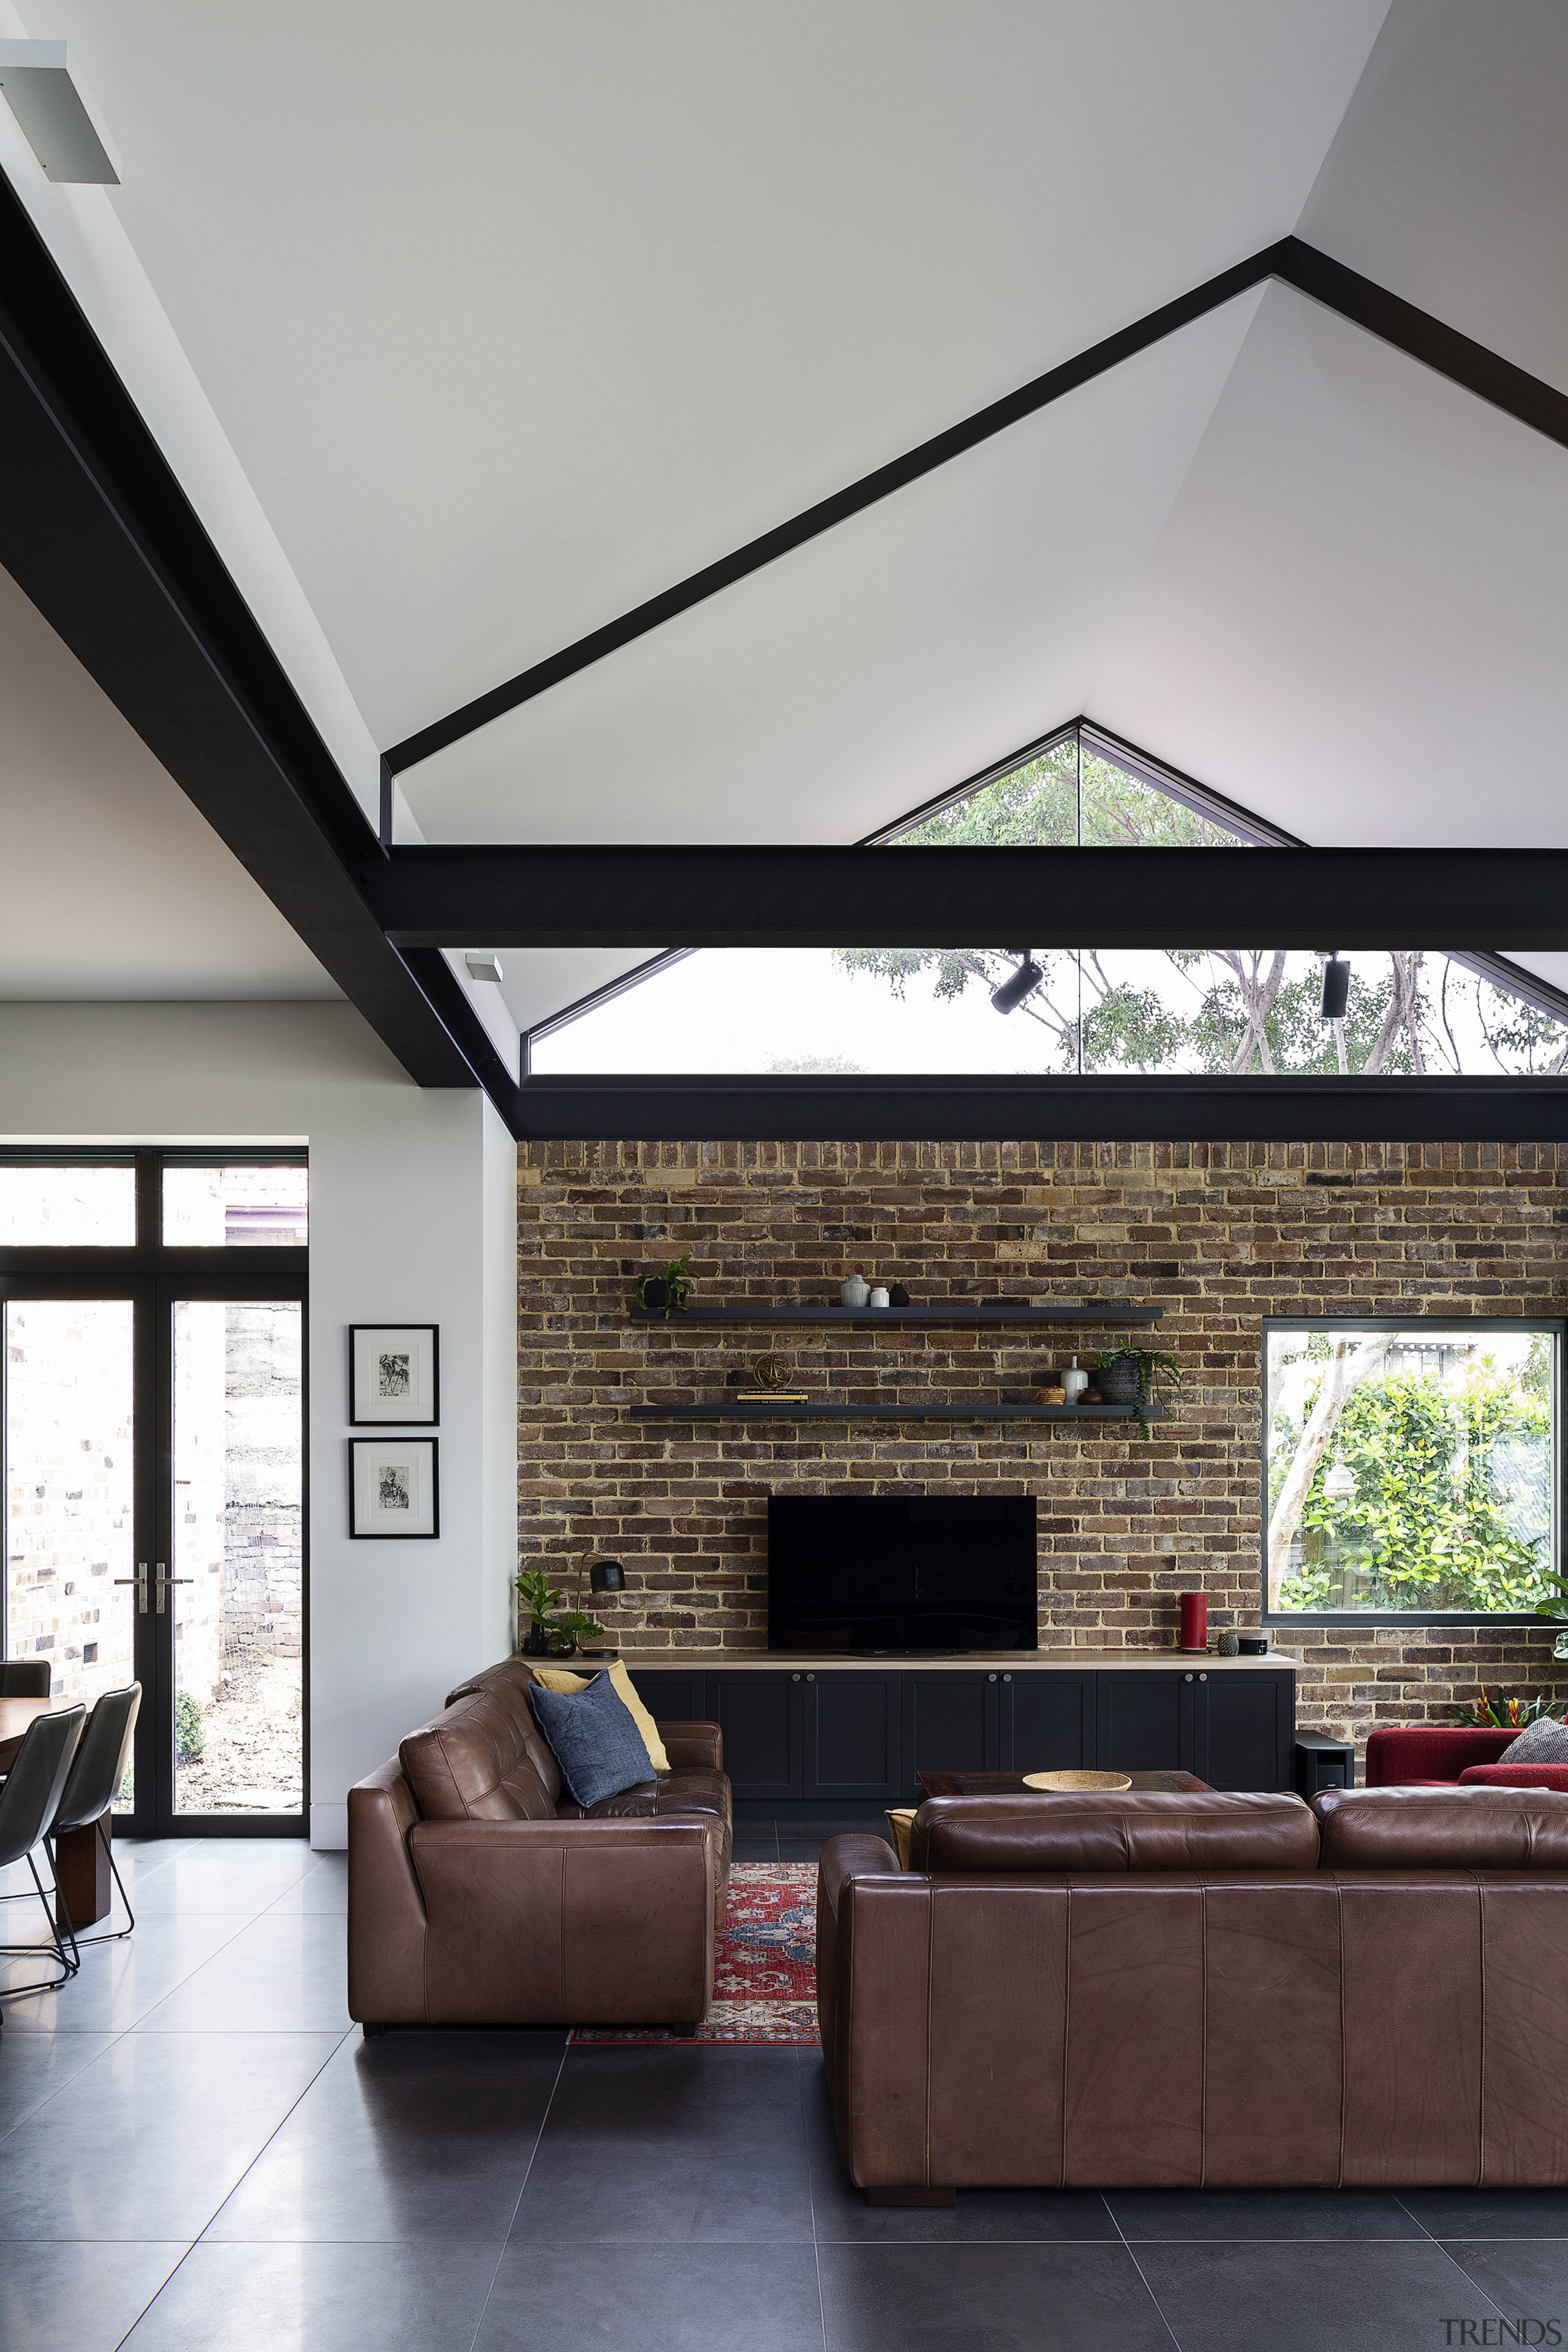 Glass ends to the gabled roof let in